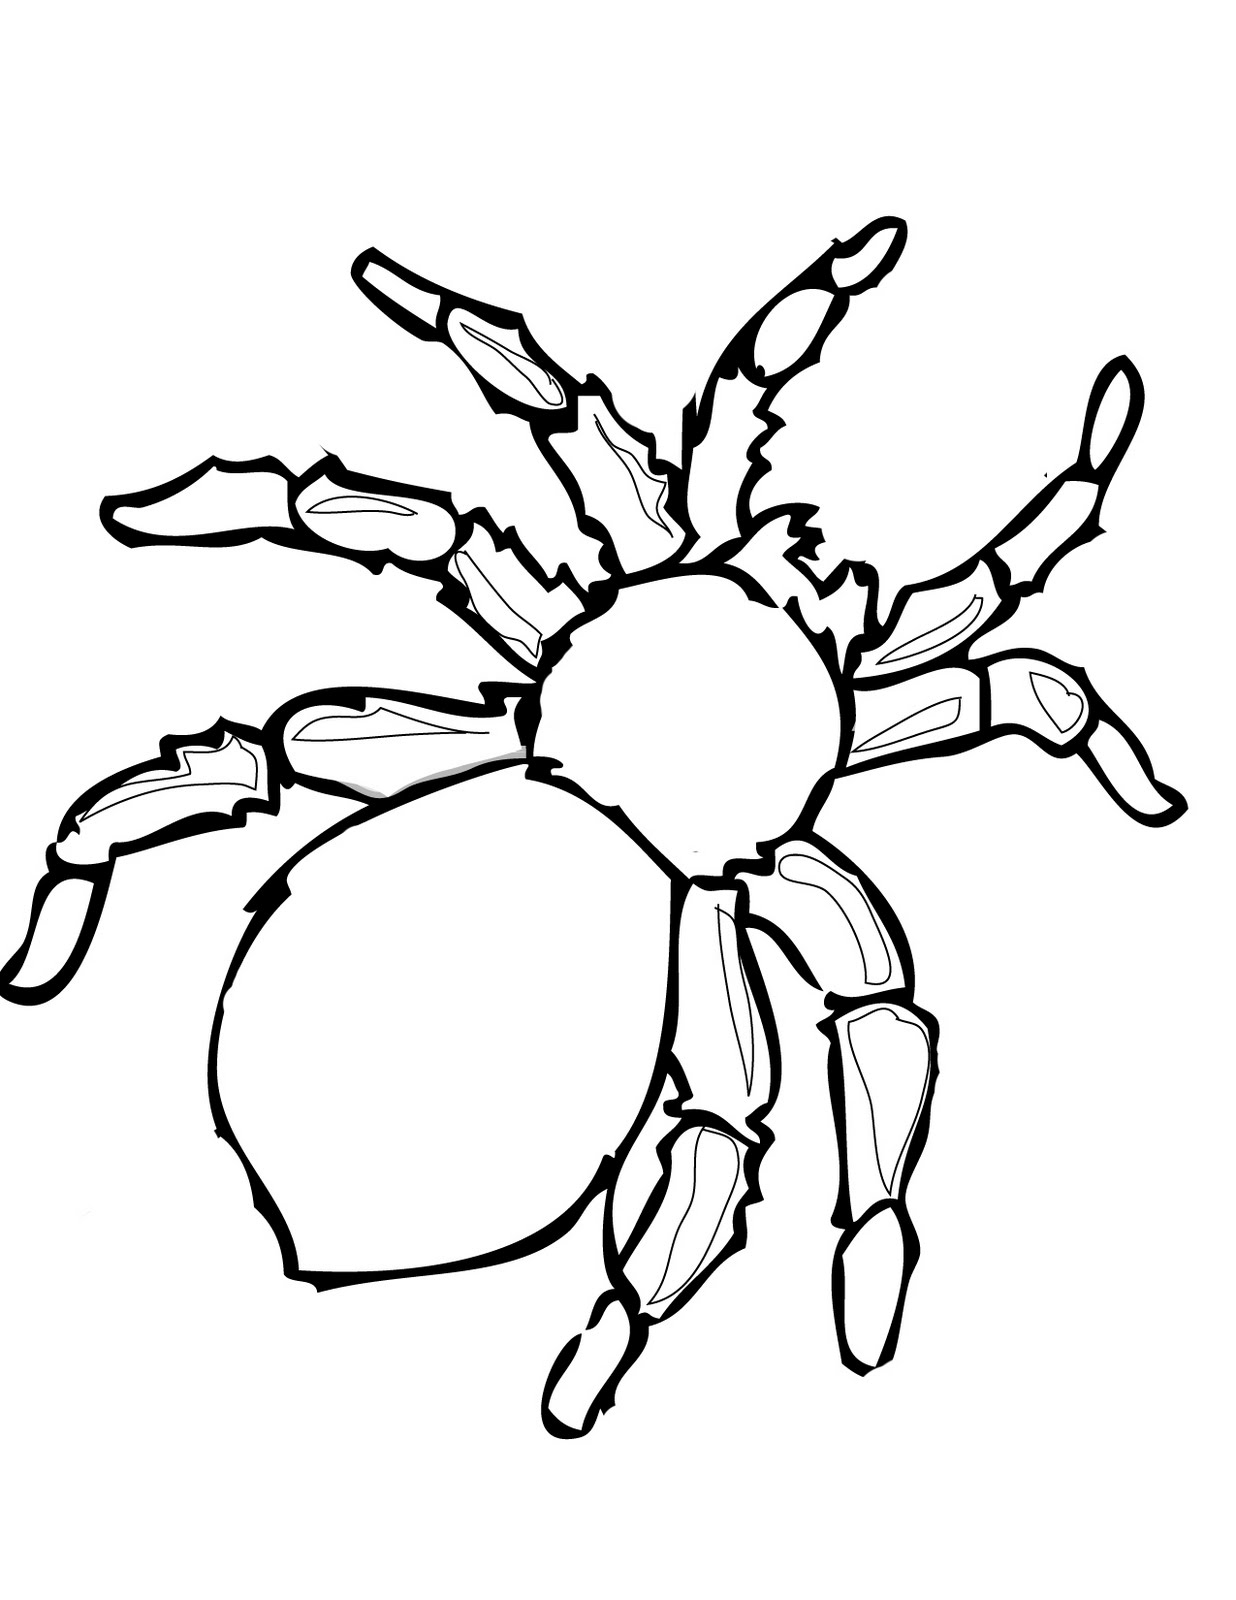 Coloring Pages Spider Color Page free printable spider coloring pages for kids pages